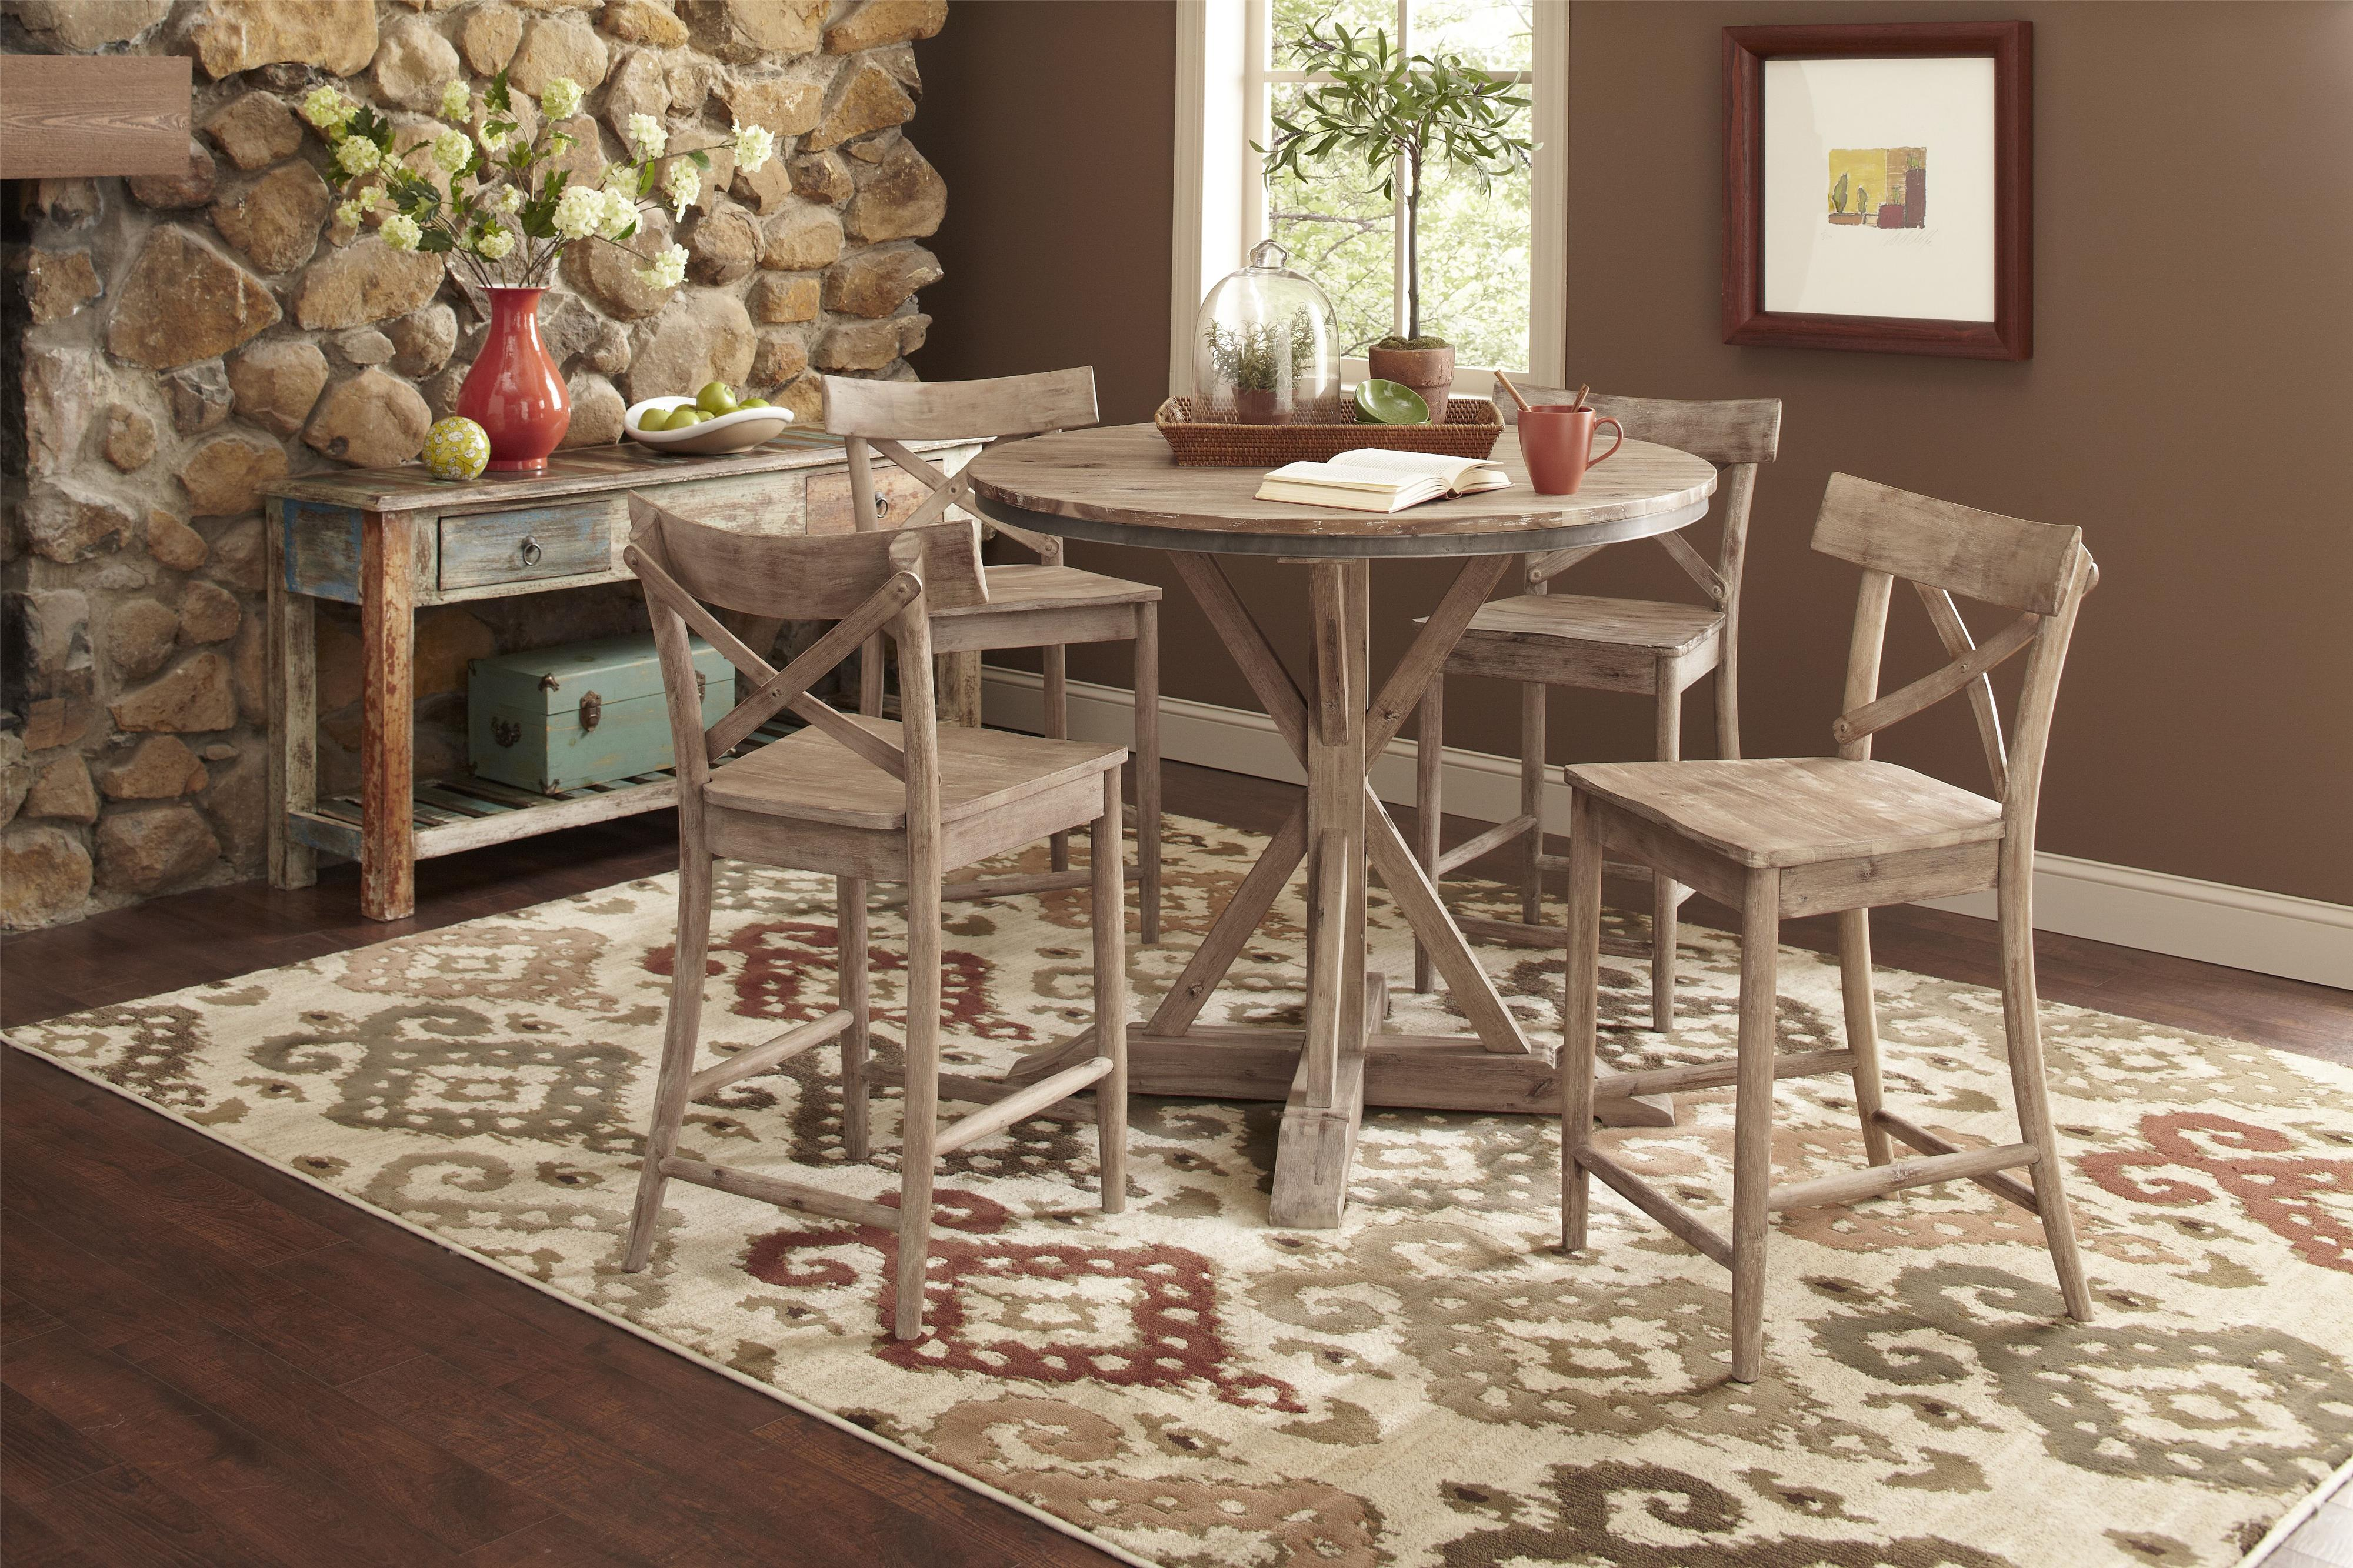 round kitchen table set. largo callista rustic casual round dining table and side chair set & Round Kitchen Table Set Largo Callista Rustic Casual Round Dining ...